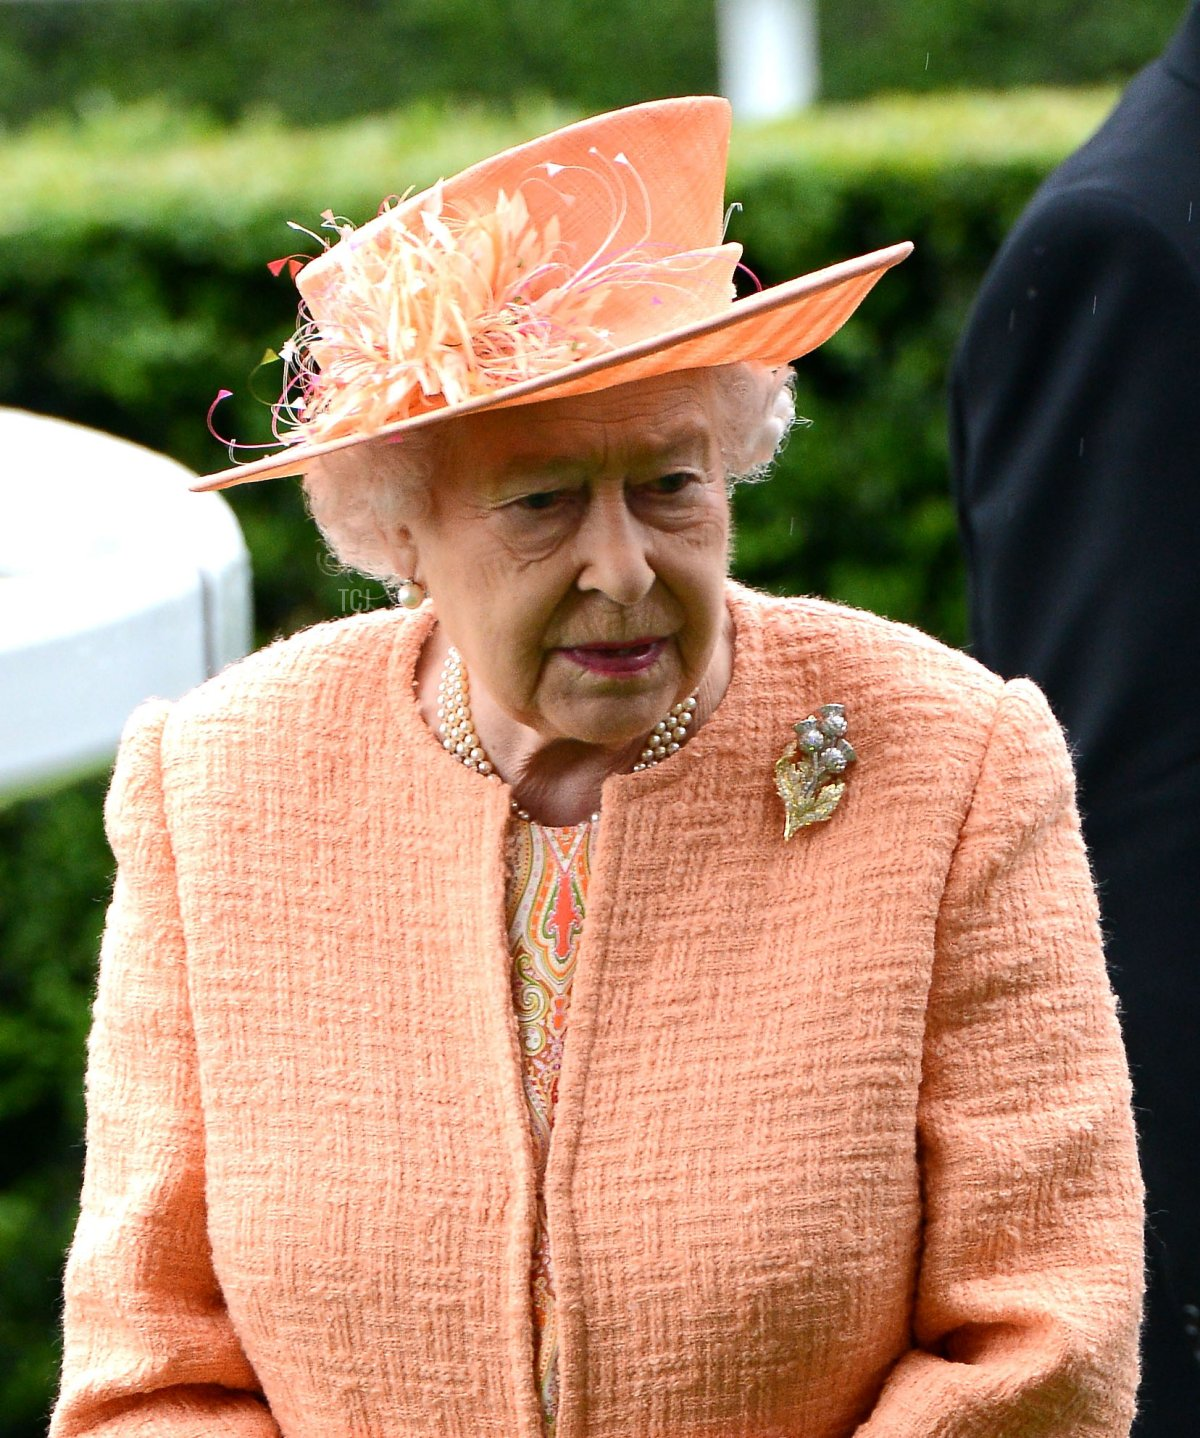 Queen Elizabeth II during the Royal Procession on day 5 of Royal Ascot 2015 at Ascot racecourse on June 20, 2015 in Ascot, England